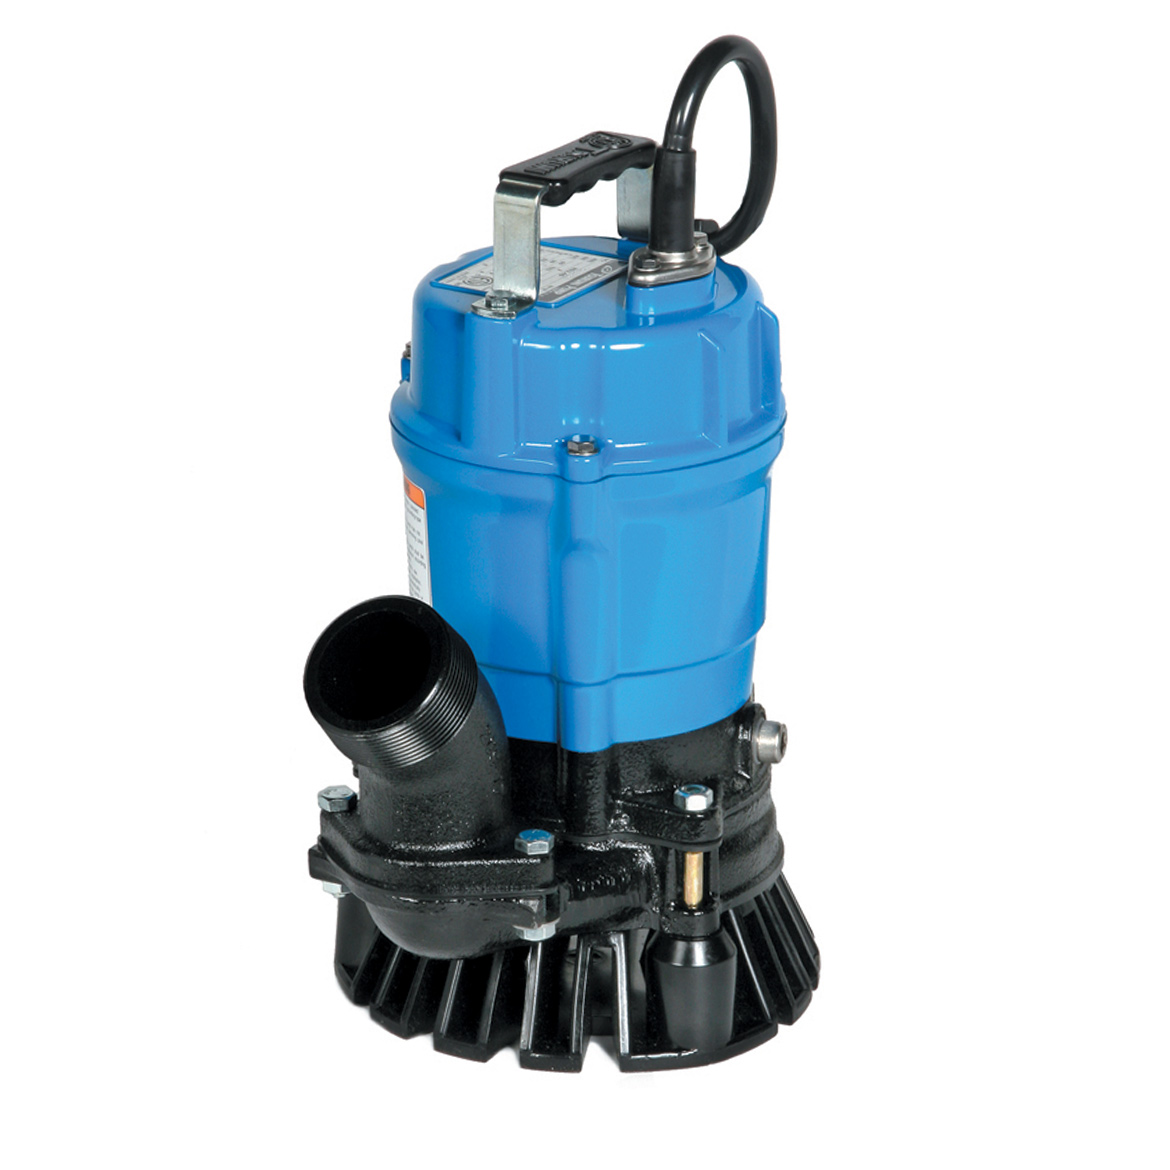 Details about Tsurumi HS2 4S-62 2-Inch 1/2 HP Semi-Vortex Submersible Trash  Pump with Agitator